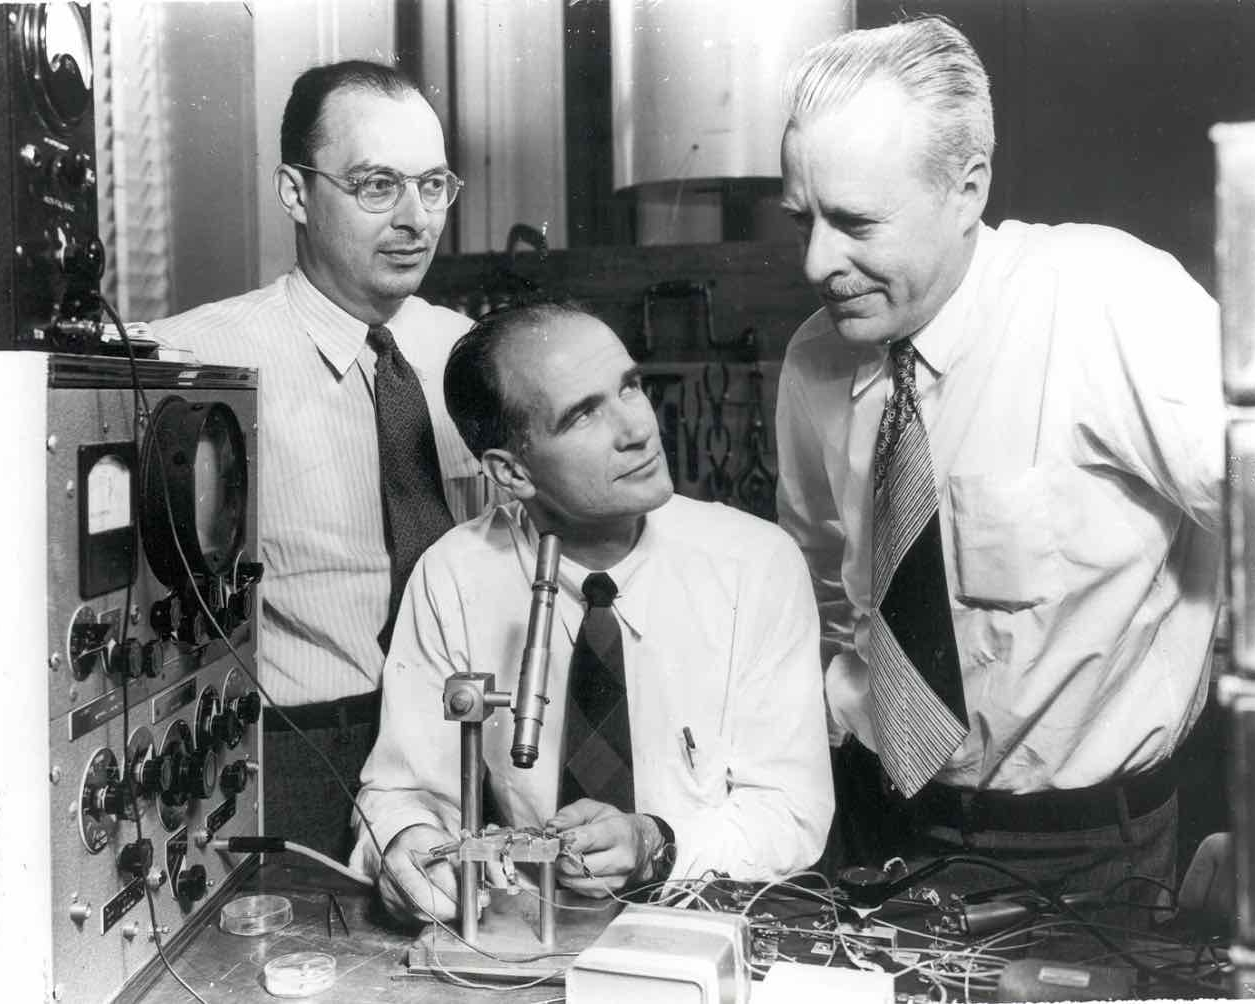 Solid state physicists John Bardeen, William Shockley, and Walter Brattain at Bell Labs in 1948.